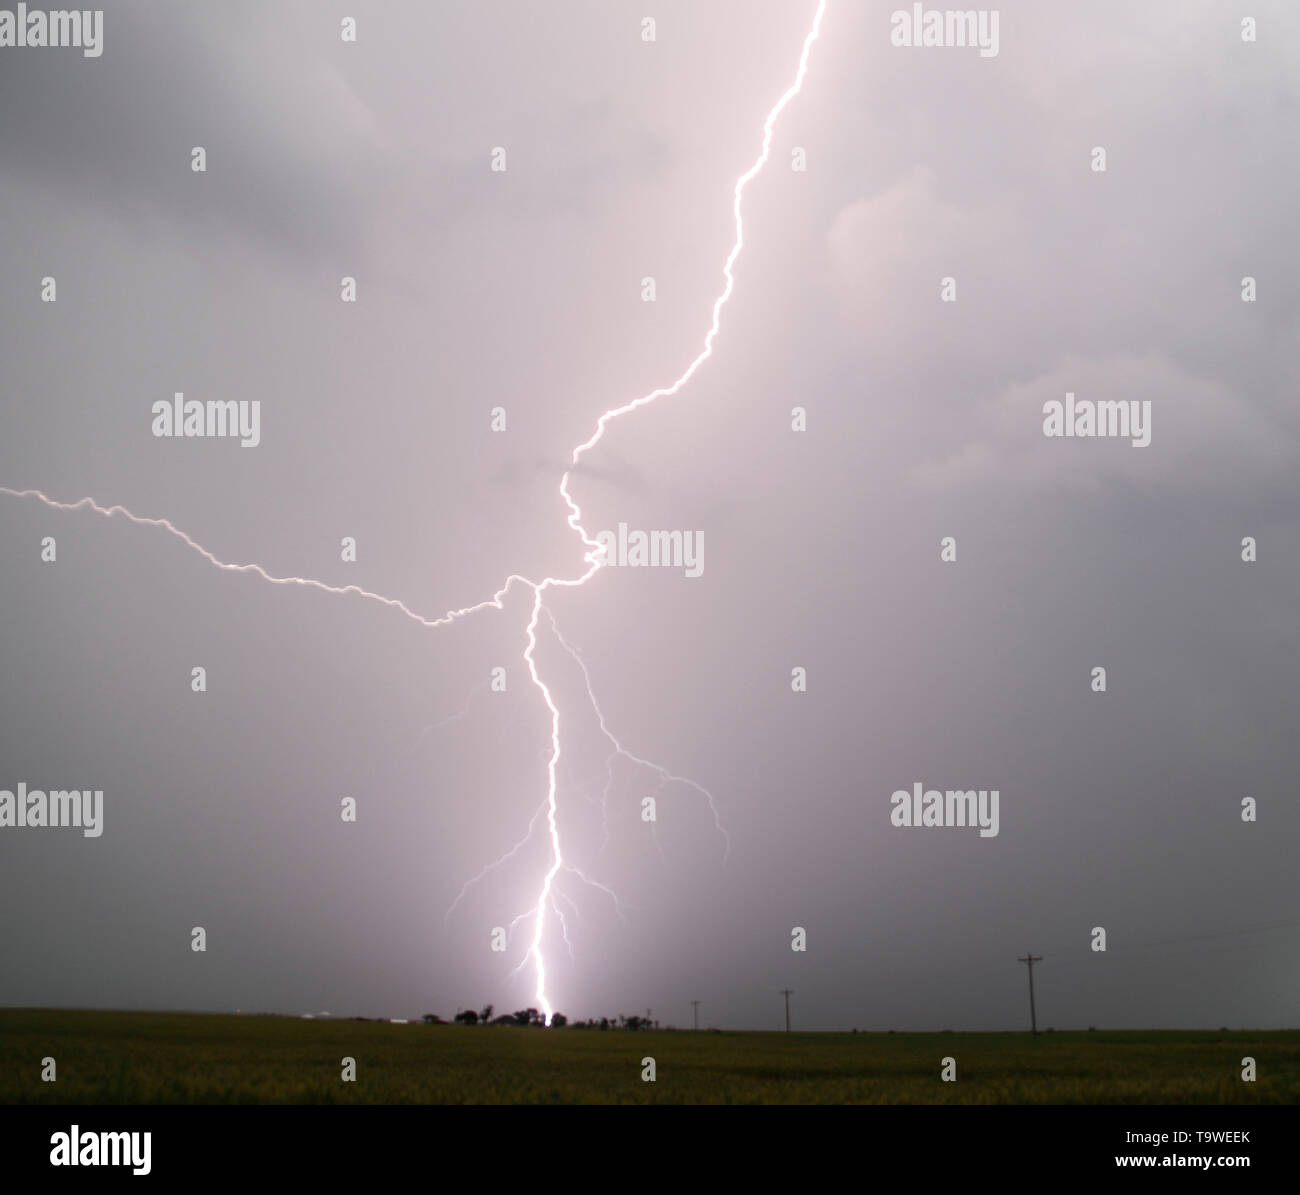 Lightning bolts hit the ground from tornado warn strong cell over the Magna OK as flooding rain and severe storms, including tornadoes, are predicted in the Southern Plains through late Monday May 20, 2019. Tornado watches in effect in the Texas Panhandle and Oklahoma expire before midnight. Then, flooding is expected to become the major concern overnight from Oklahoma City to Tulsa and to the northeast. The tornado outbreak has not been as severe as feared as twisters have mostly avoided population centers. Photo by Gene Blevins/ZumaPress Credit: Gene Blevins/ZUMA Wire/Alamy Live News - Stock Image